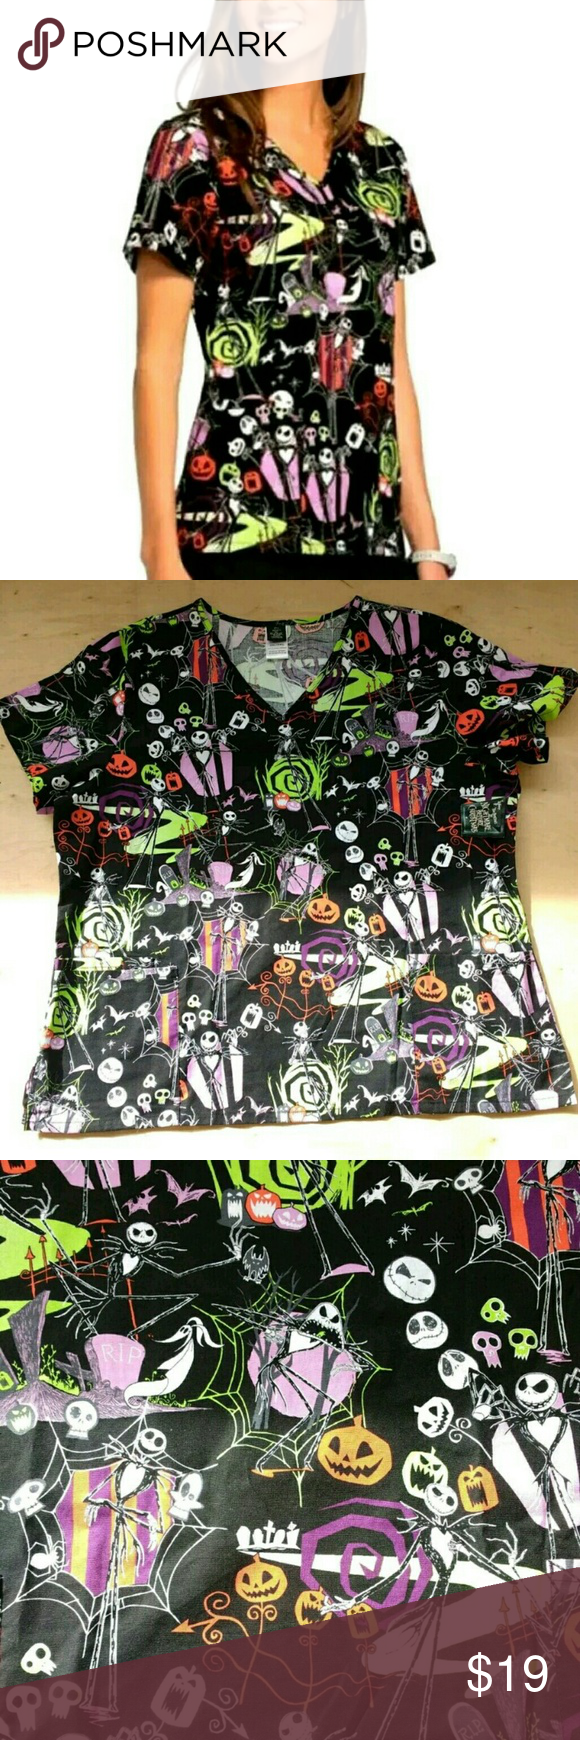 Disney THE NIGHTMARE BEFORE CHRISTMAS Scrub Top New with tags ...